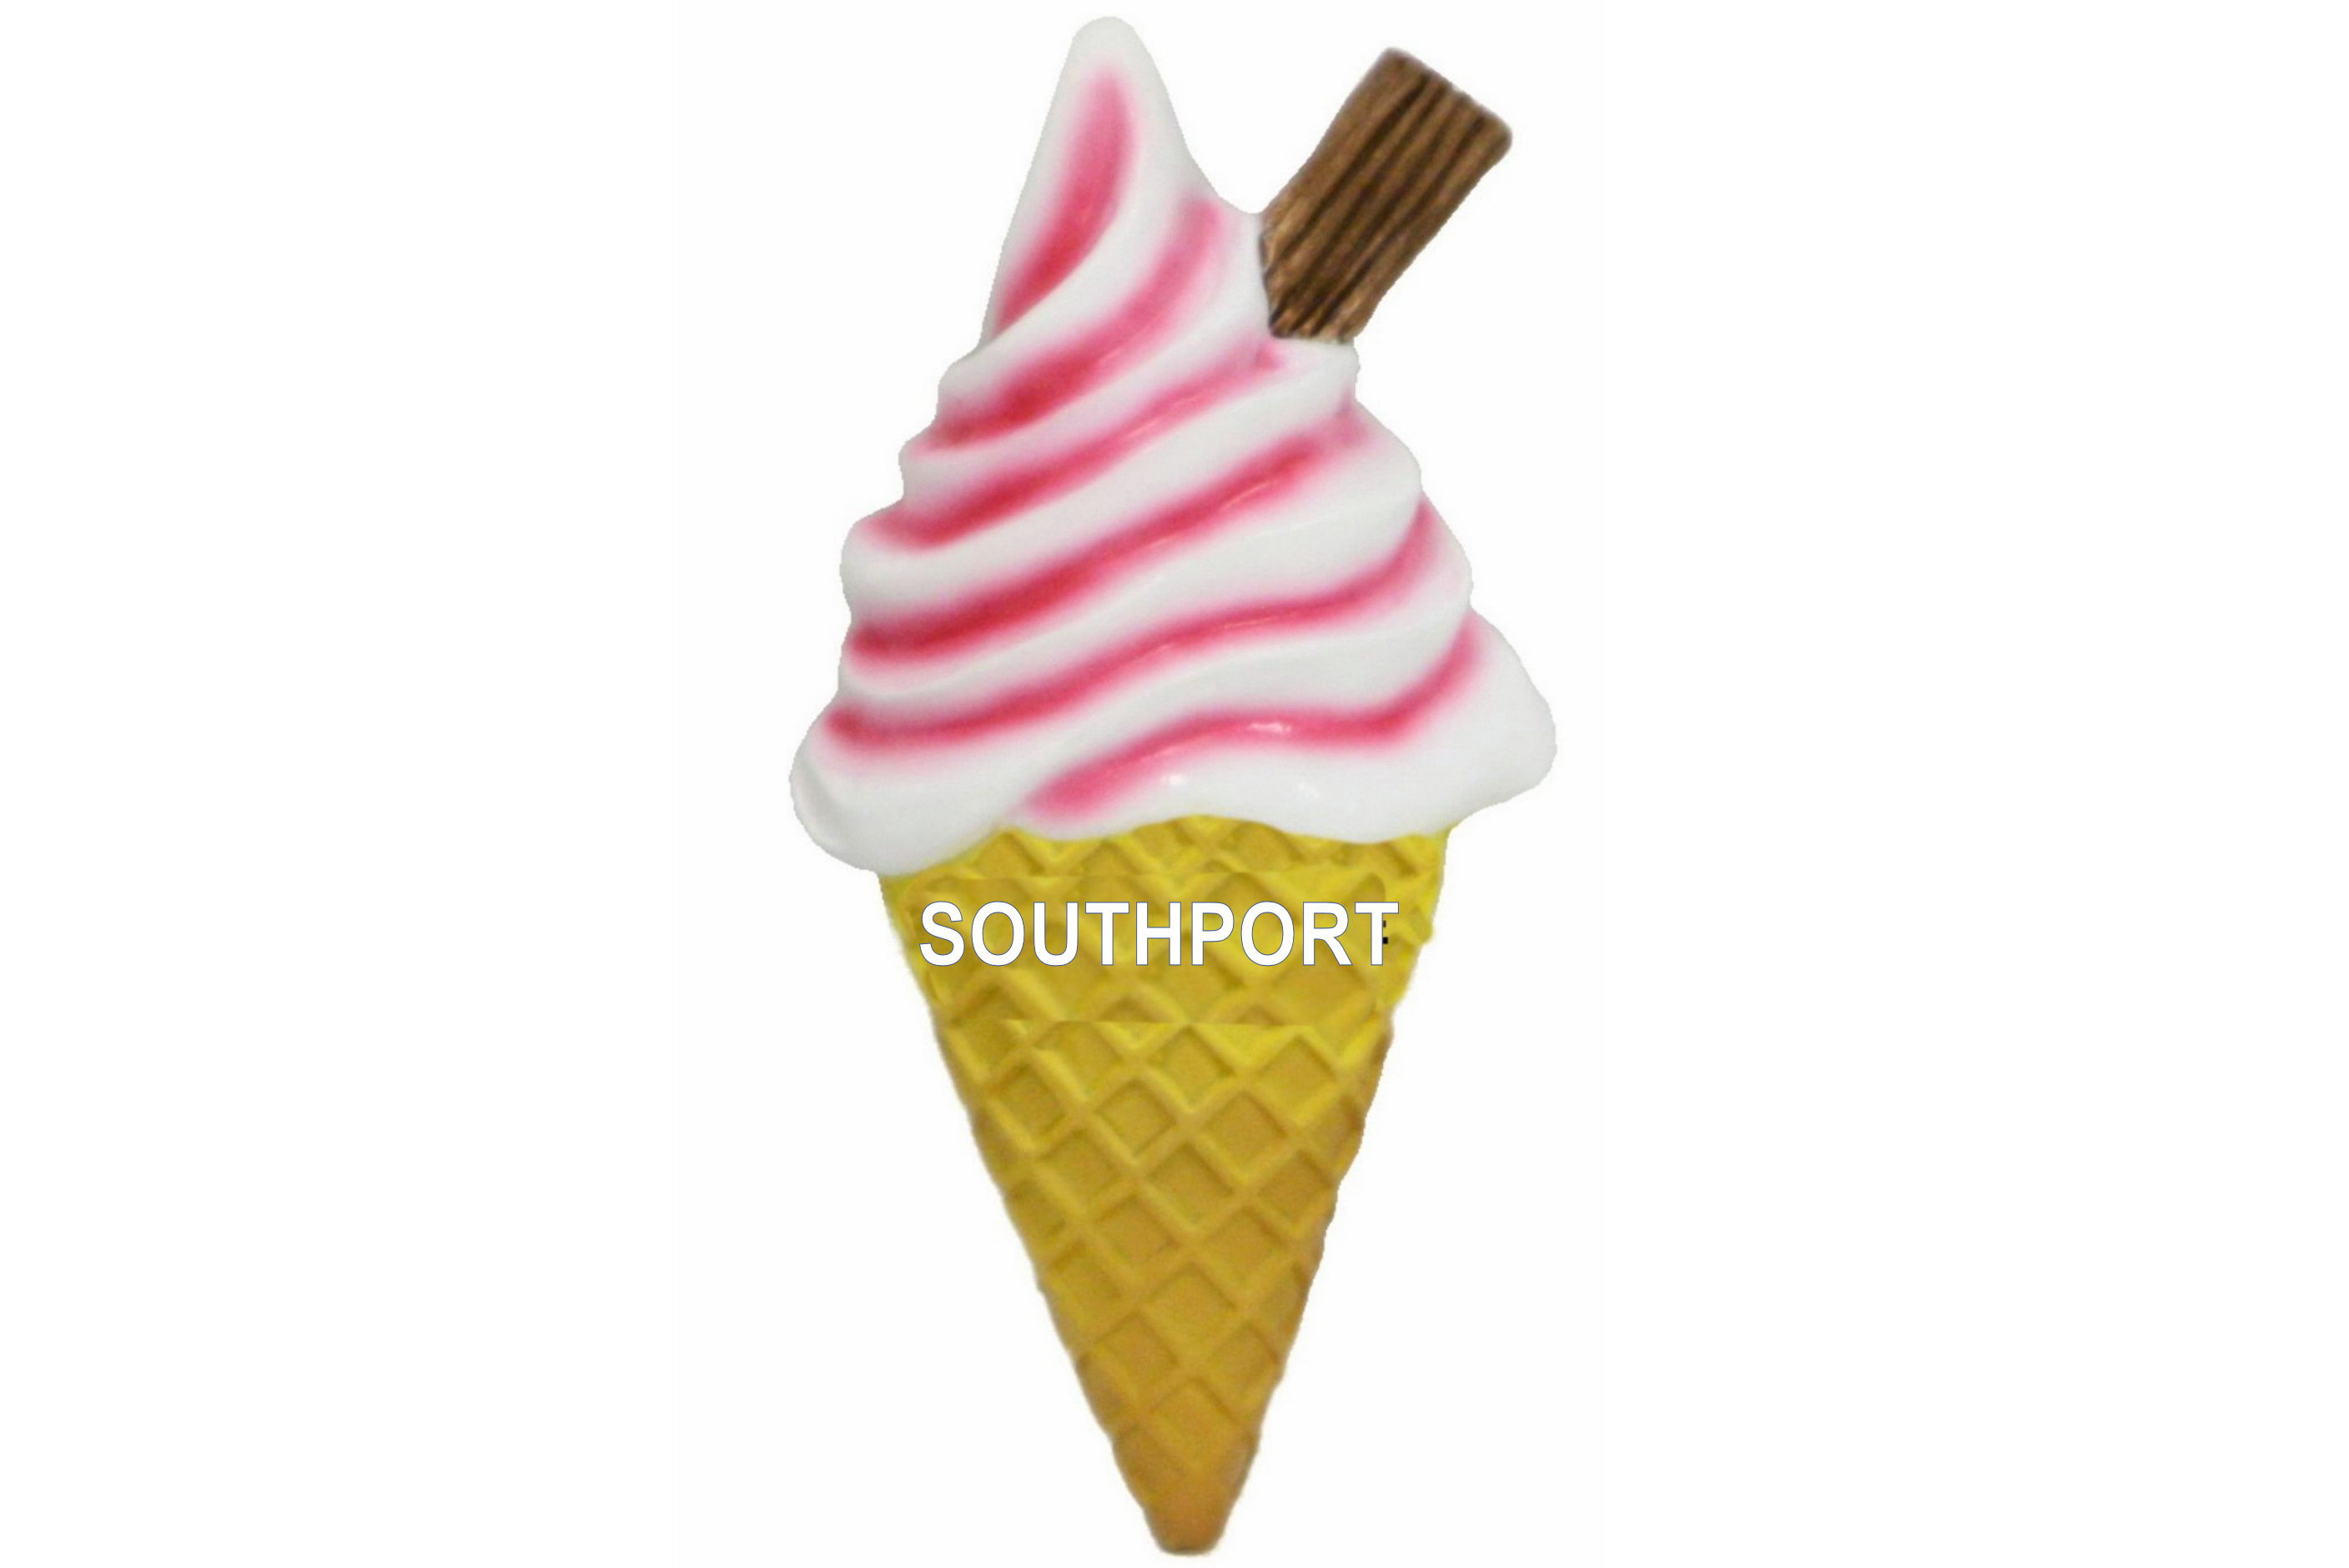 Southport Ice Cream Resin Magnet